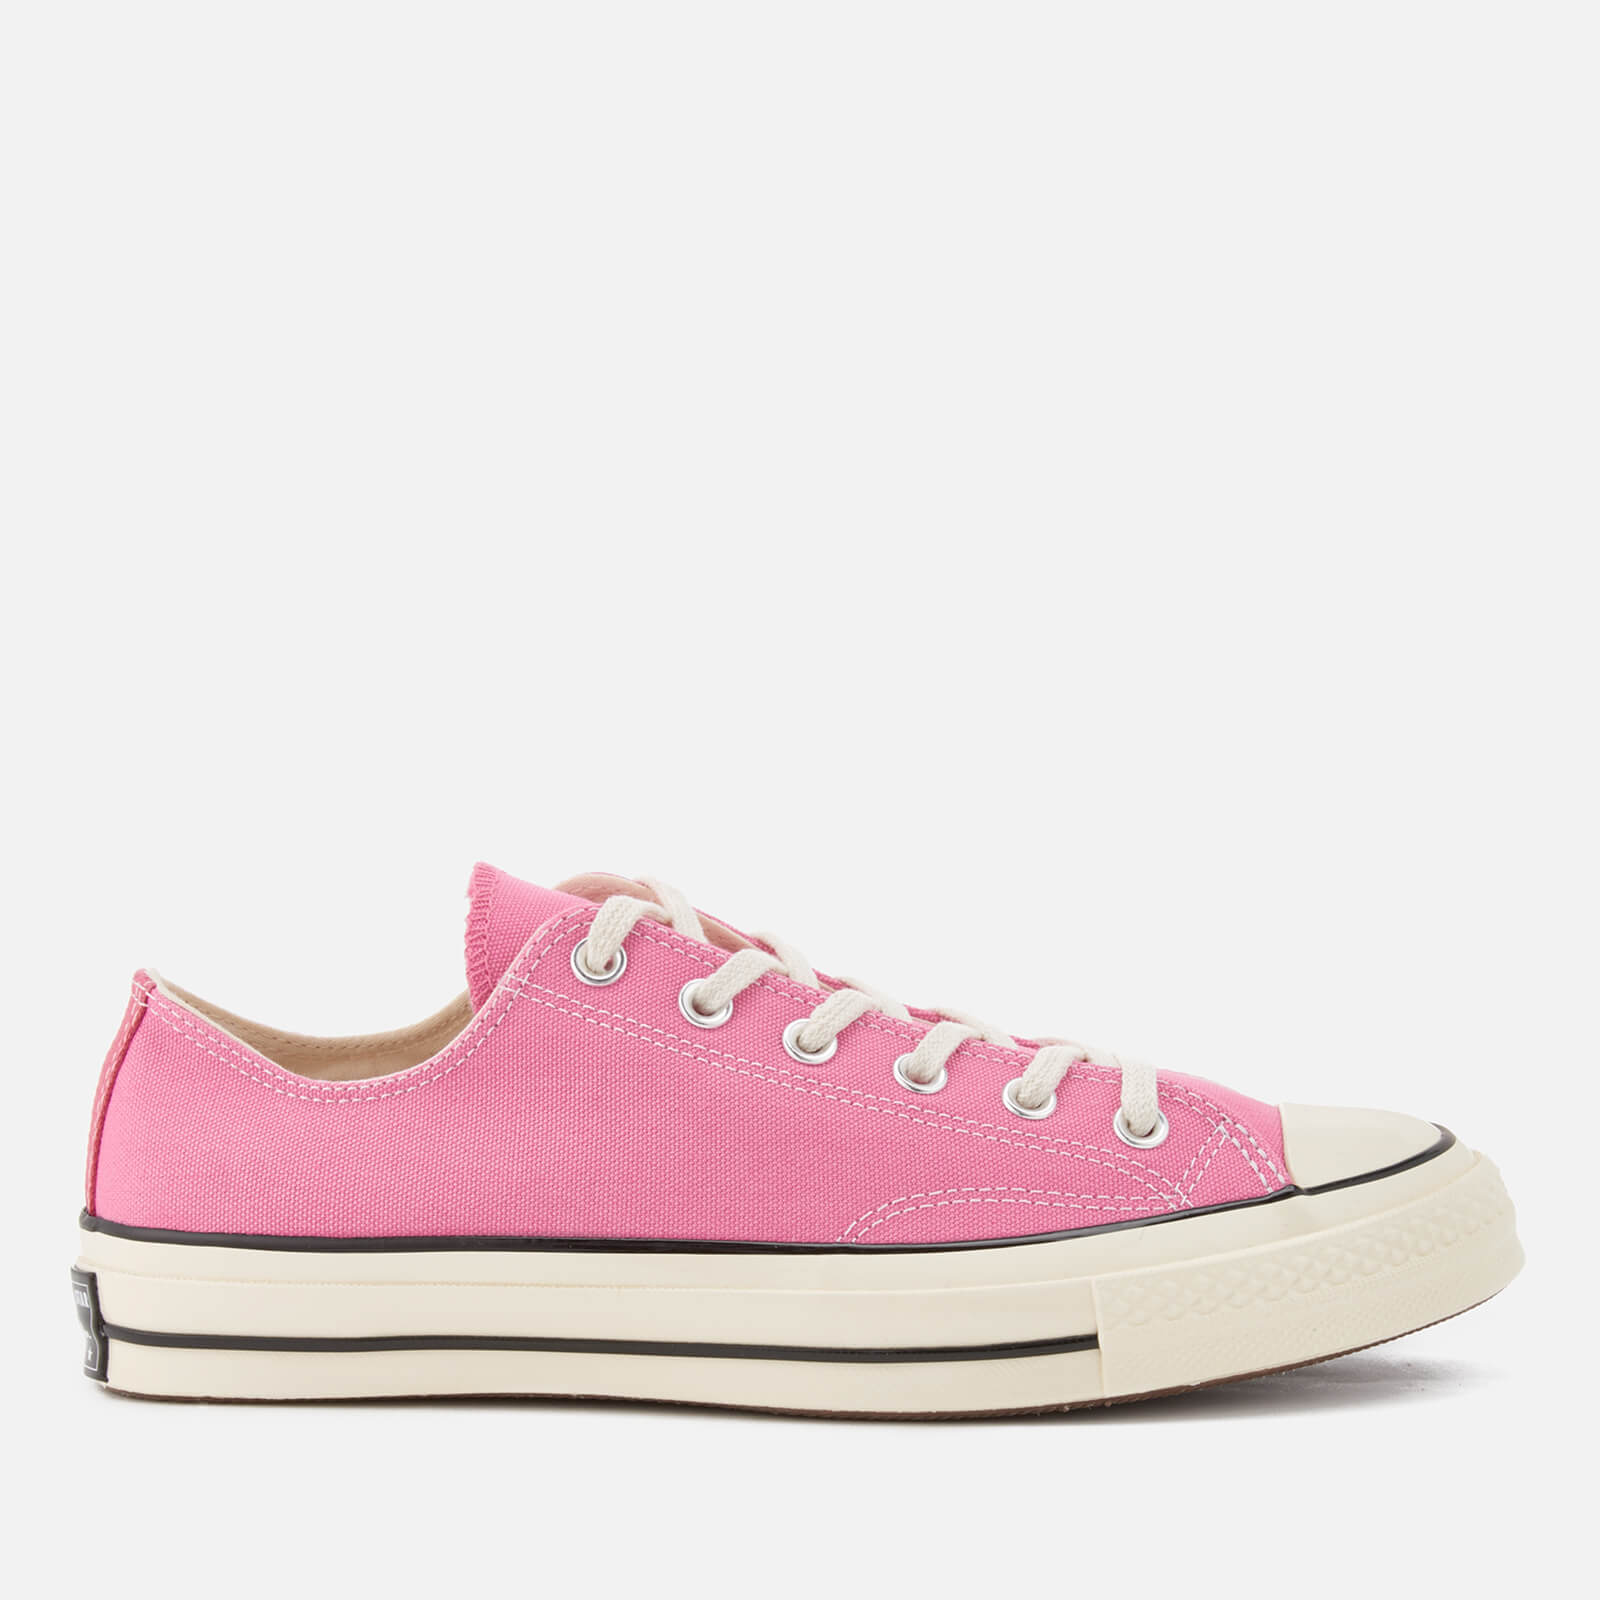 4c174a5e6d8 Converse Chuck Taylor All Star  70 Ox Trainers - Chateau Rose Egret Black -  Free UK Delivery over £50